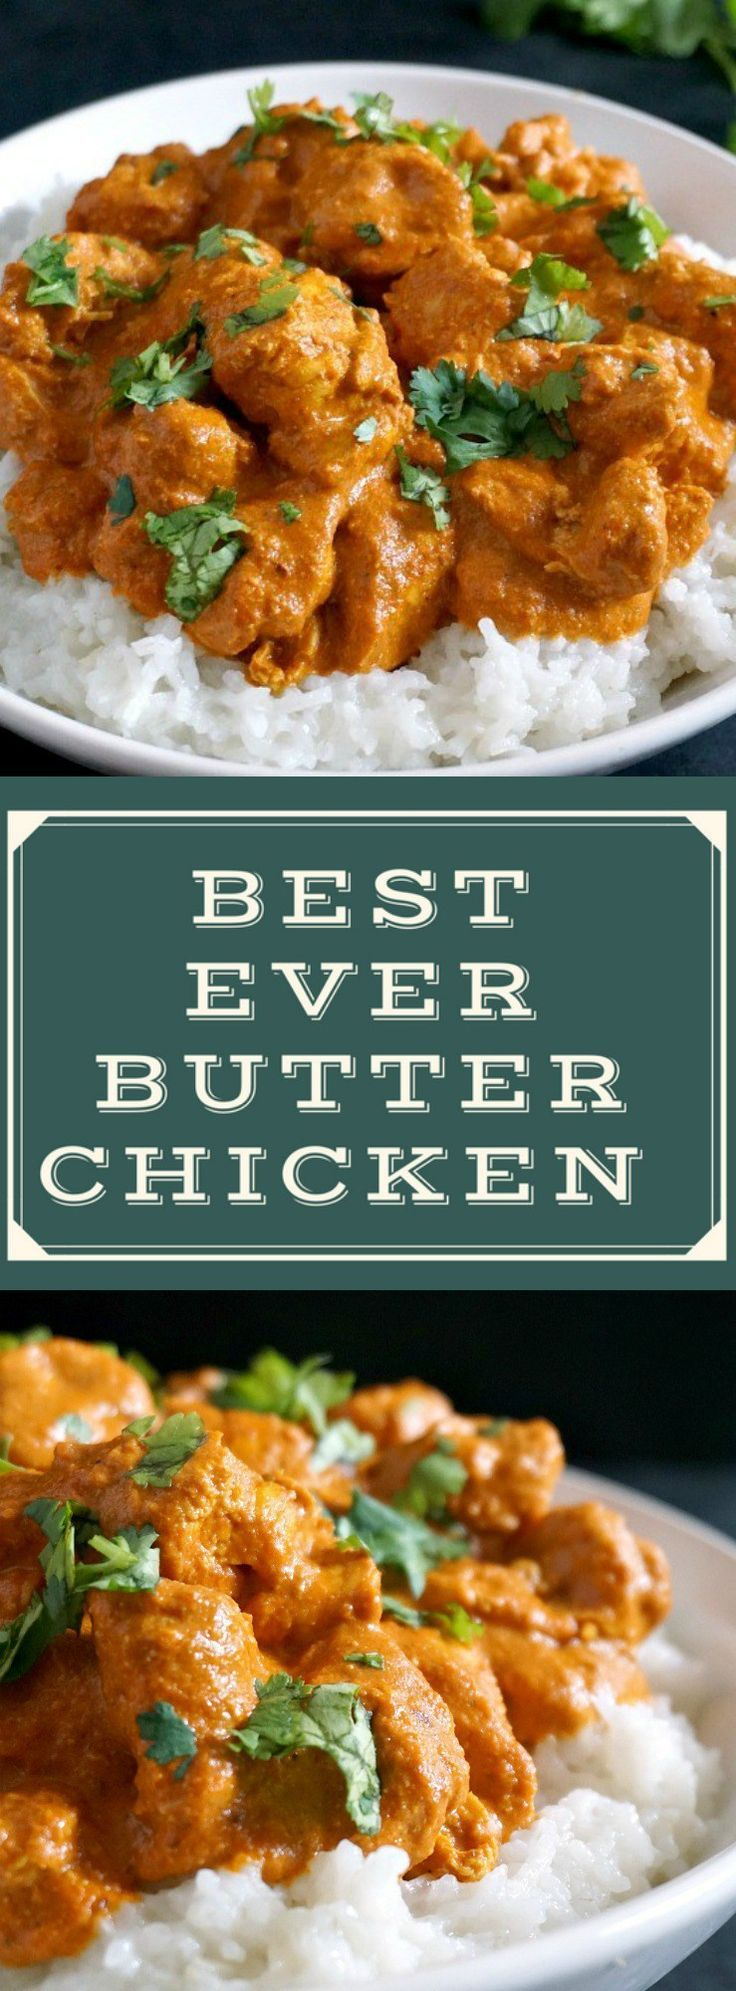 This easy butter chicken recipe Indian style is my take on the classic chicken curry dish that is popular all over the world. With a rich creamy sauce and a fantastic blend of spices, this is one of the must-try easy family dinner recipes.